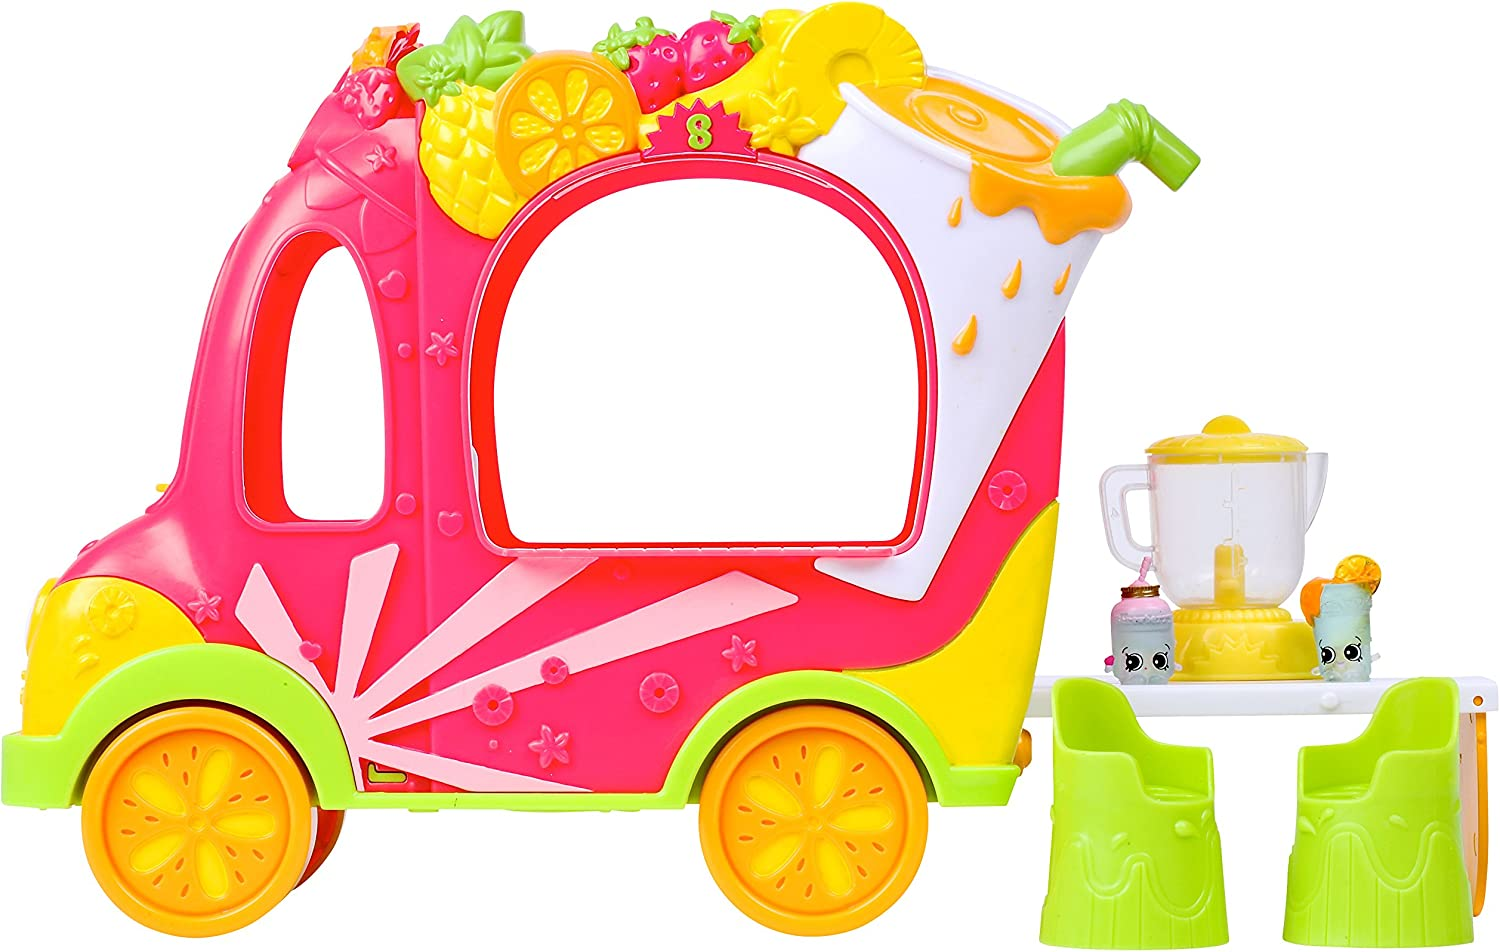 Top 12 Best Shopkins Toys (2020 Reviews & Buying Guide) 4